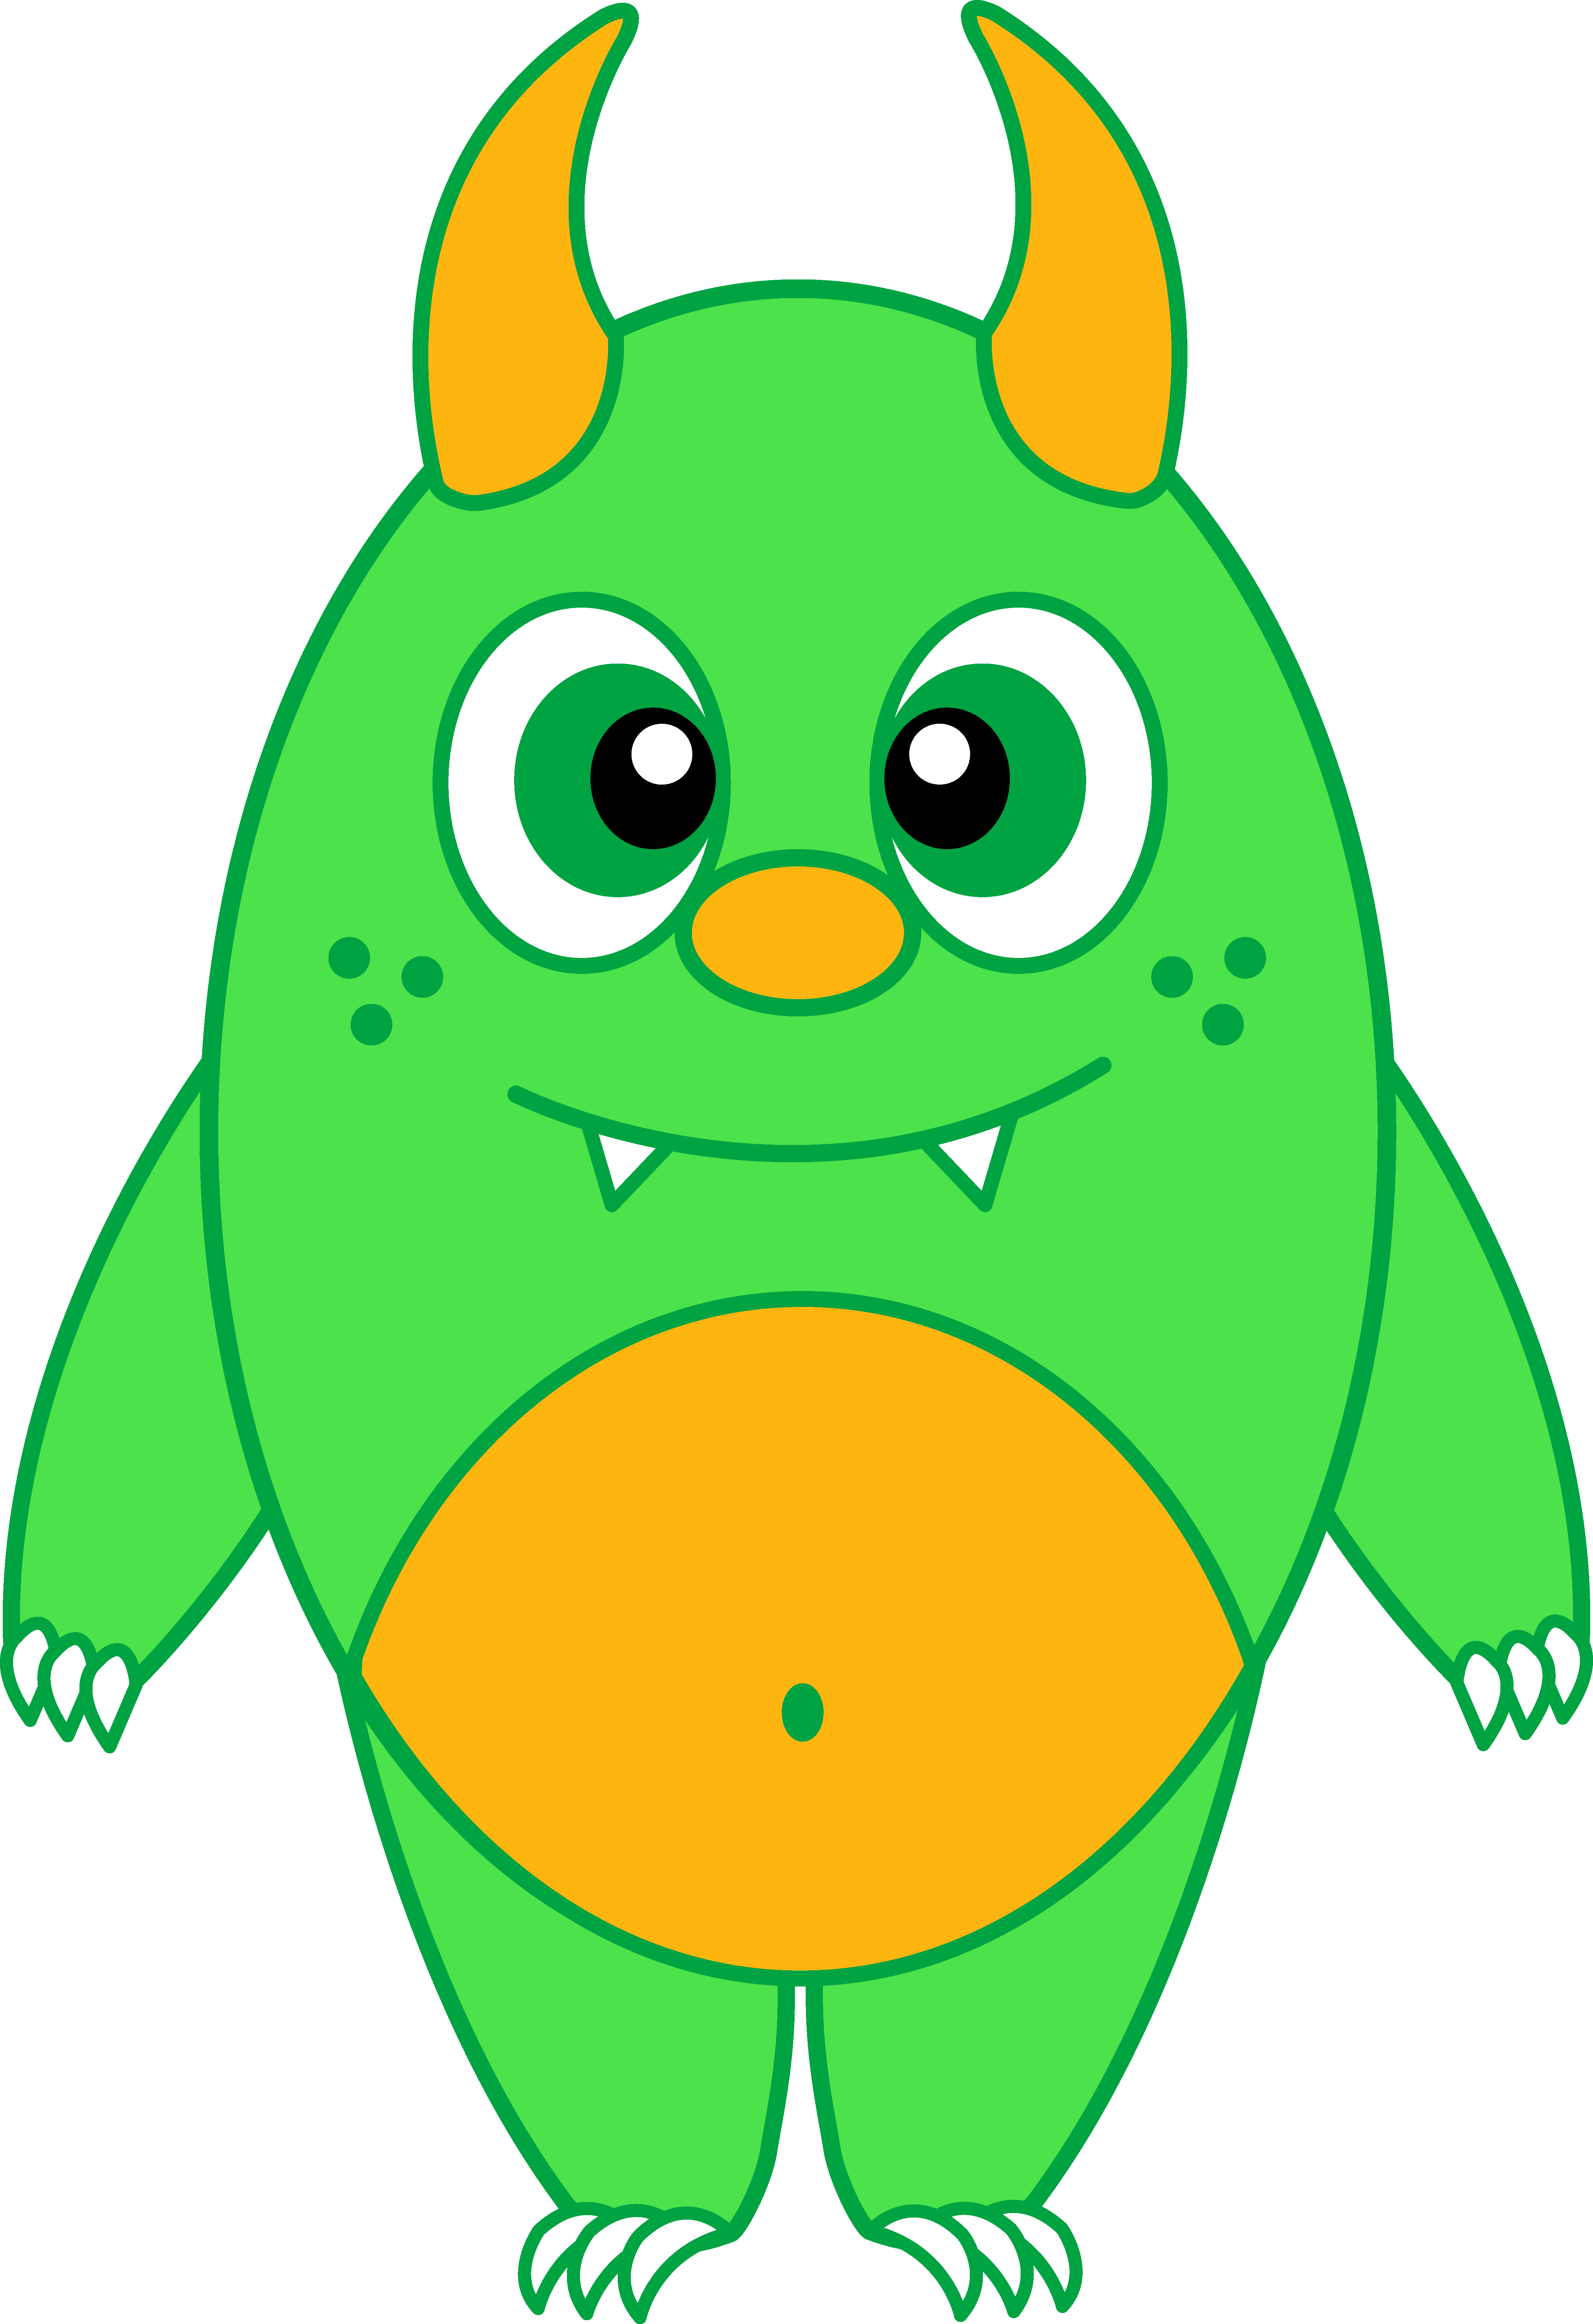 Free Monsters Cliparts, Download Free Clip Art, Free Clip Art on.